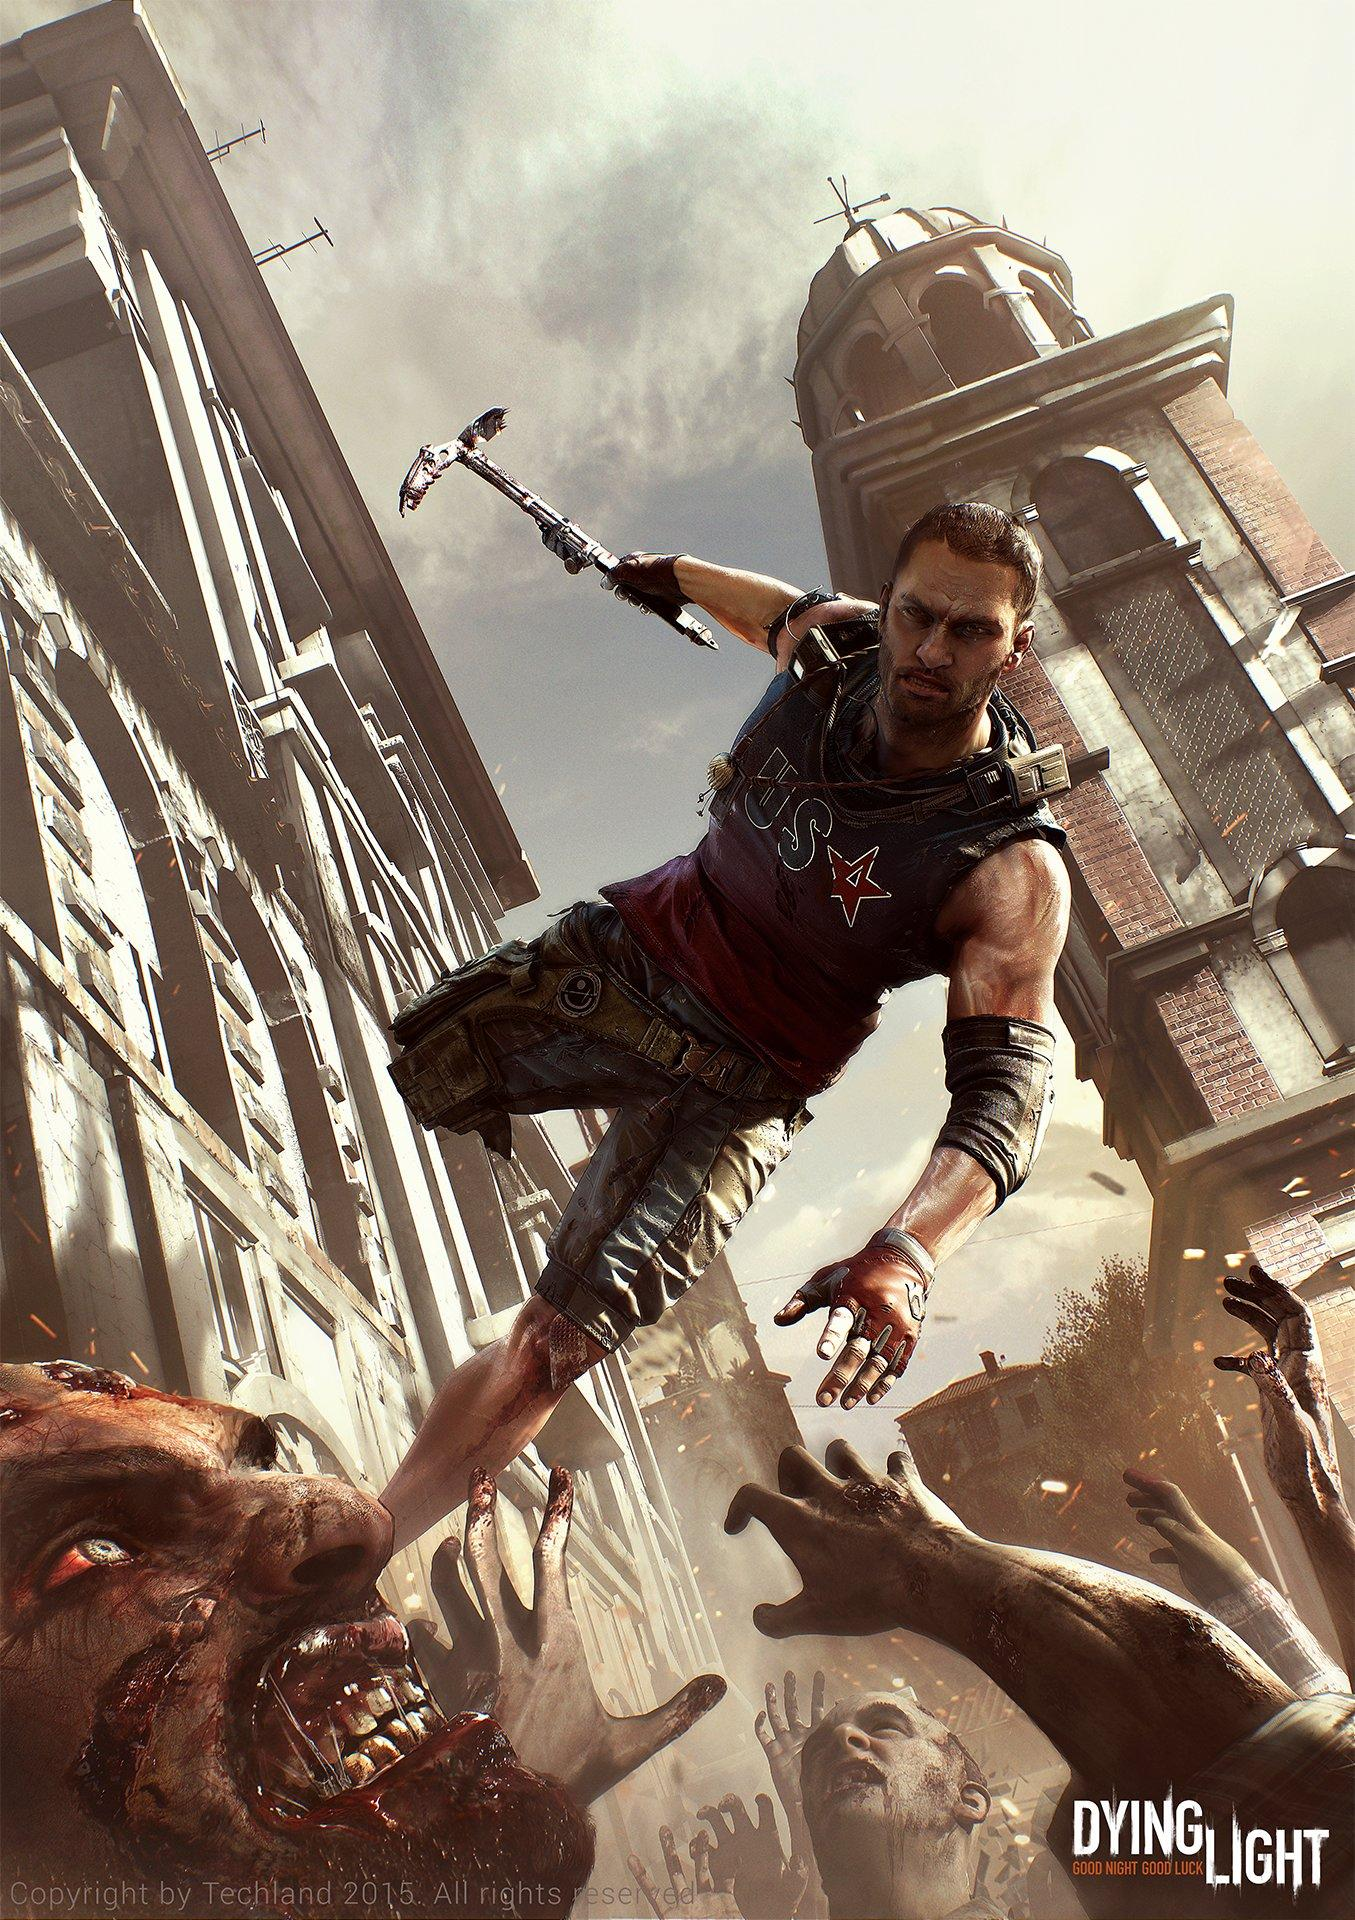 Dying Light Wallpaper Main Character For Dying Light 2 354860